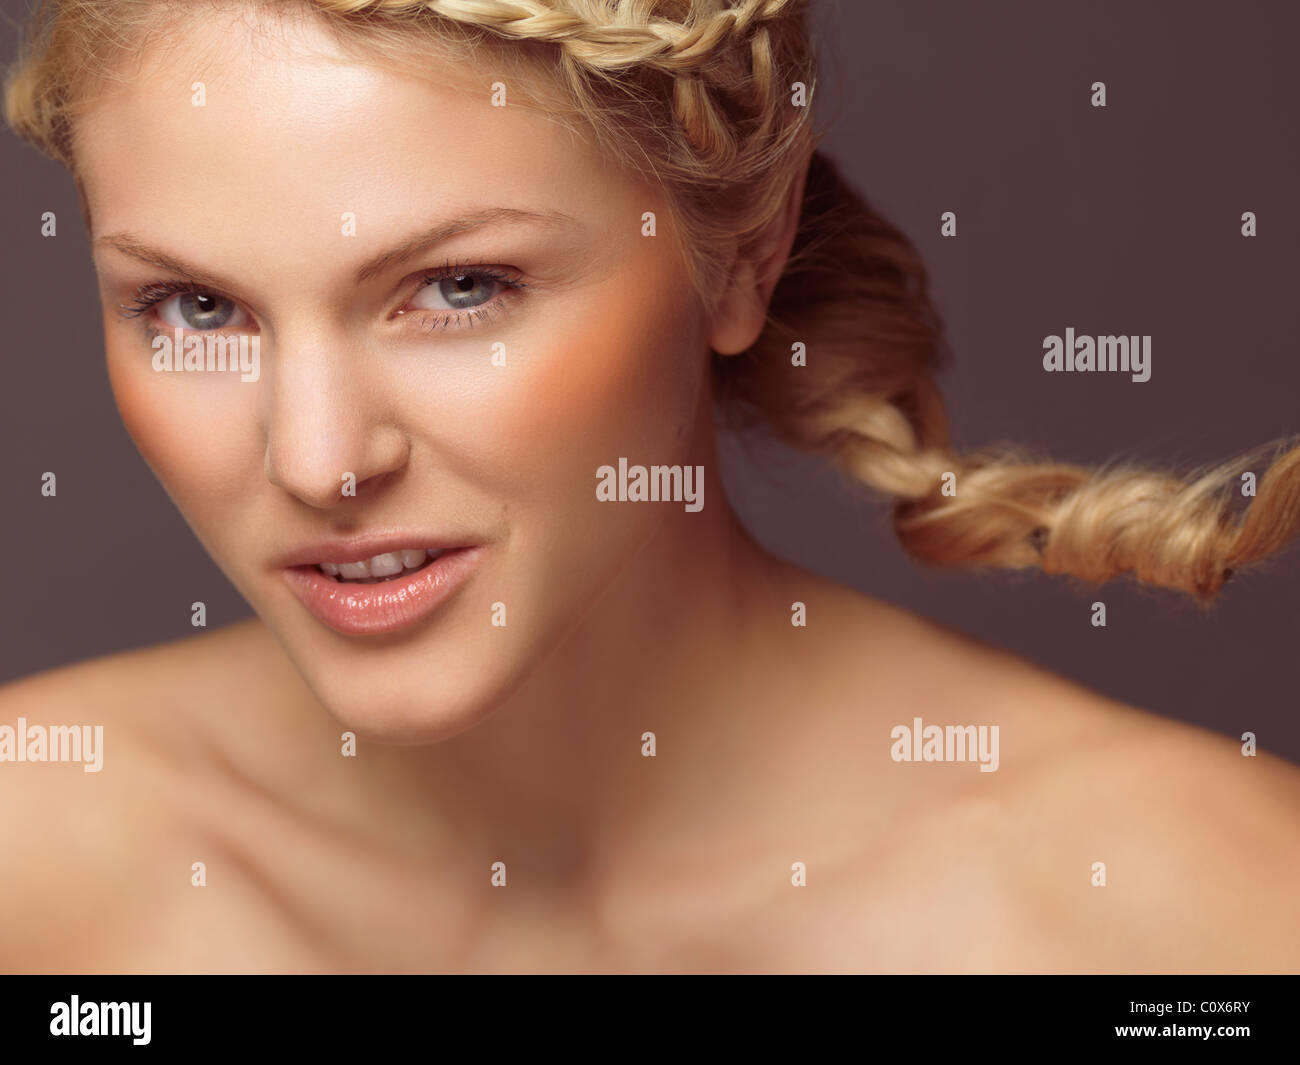 Beauty portrait of a young smiling woman with a braid and orange blush Stock Photo